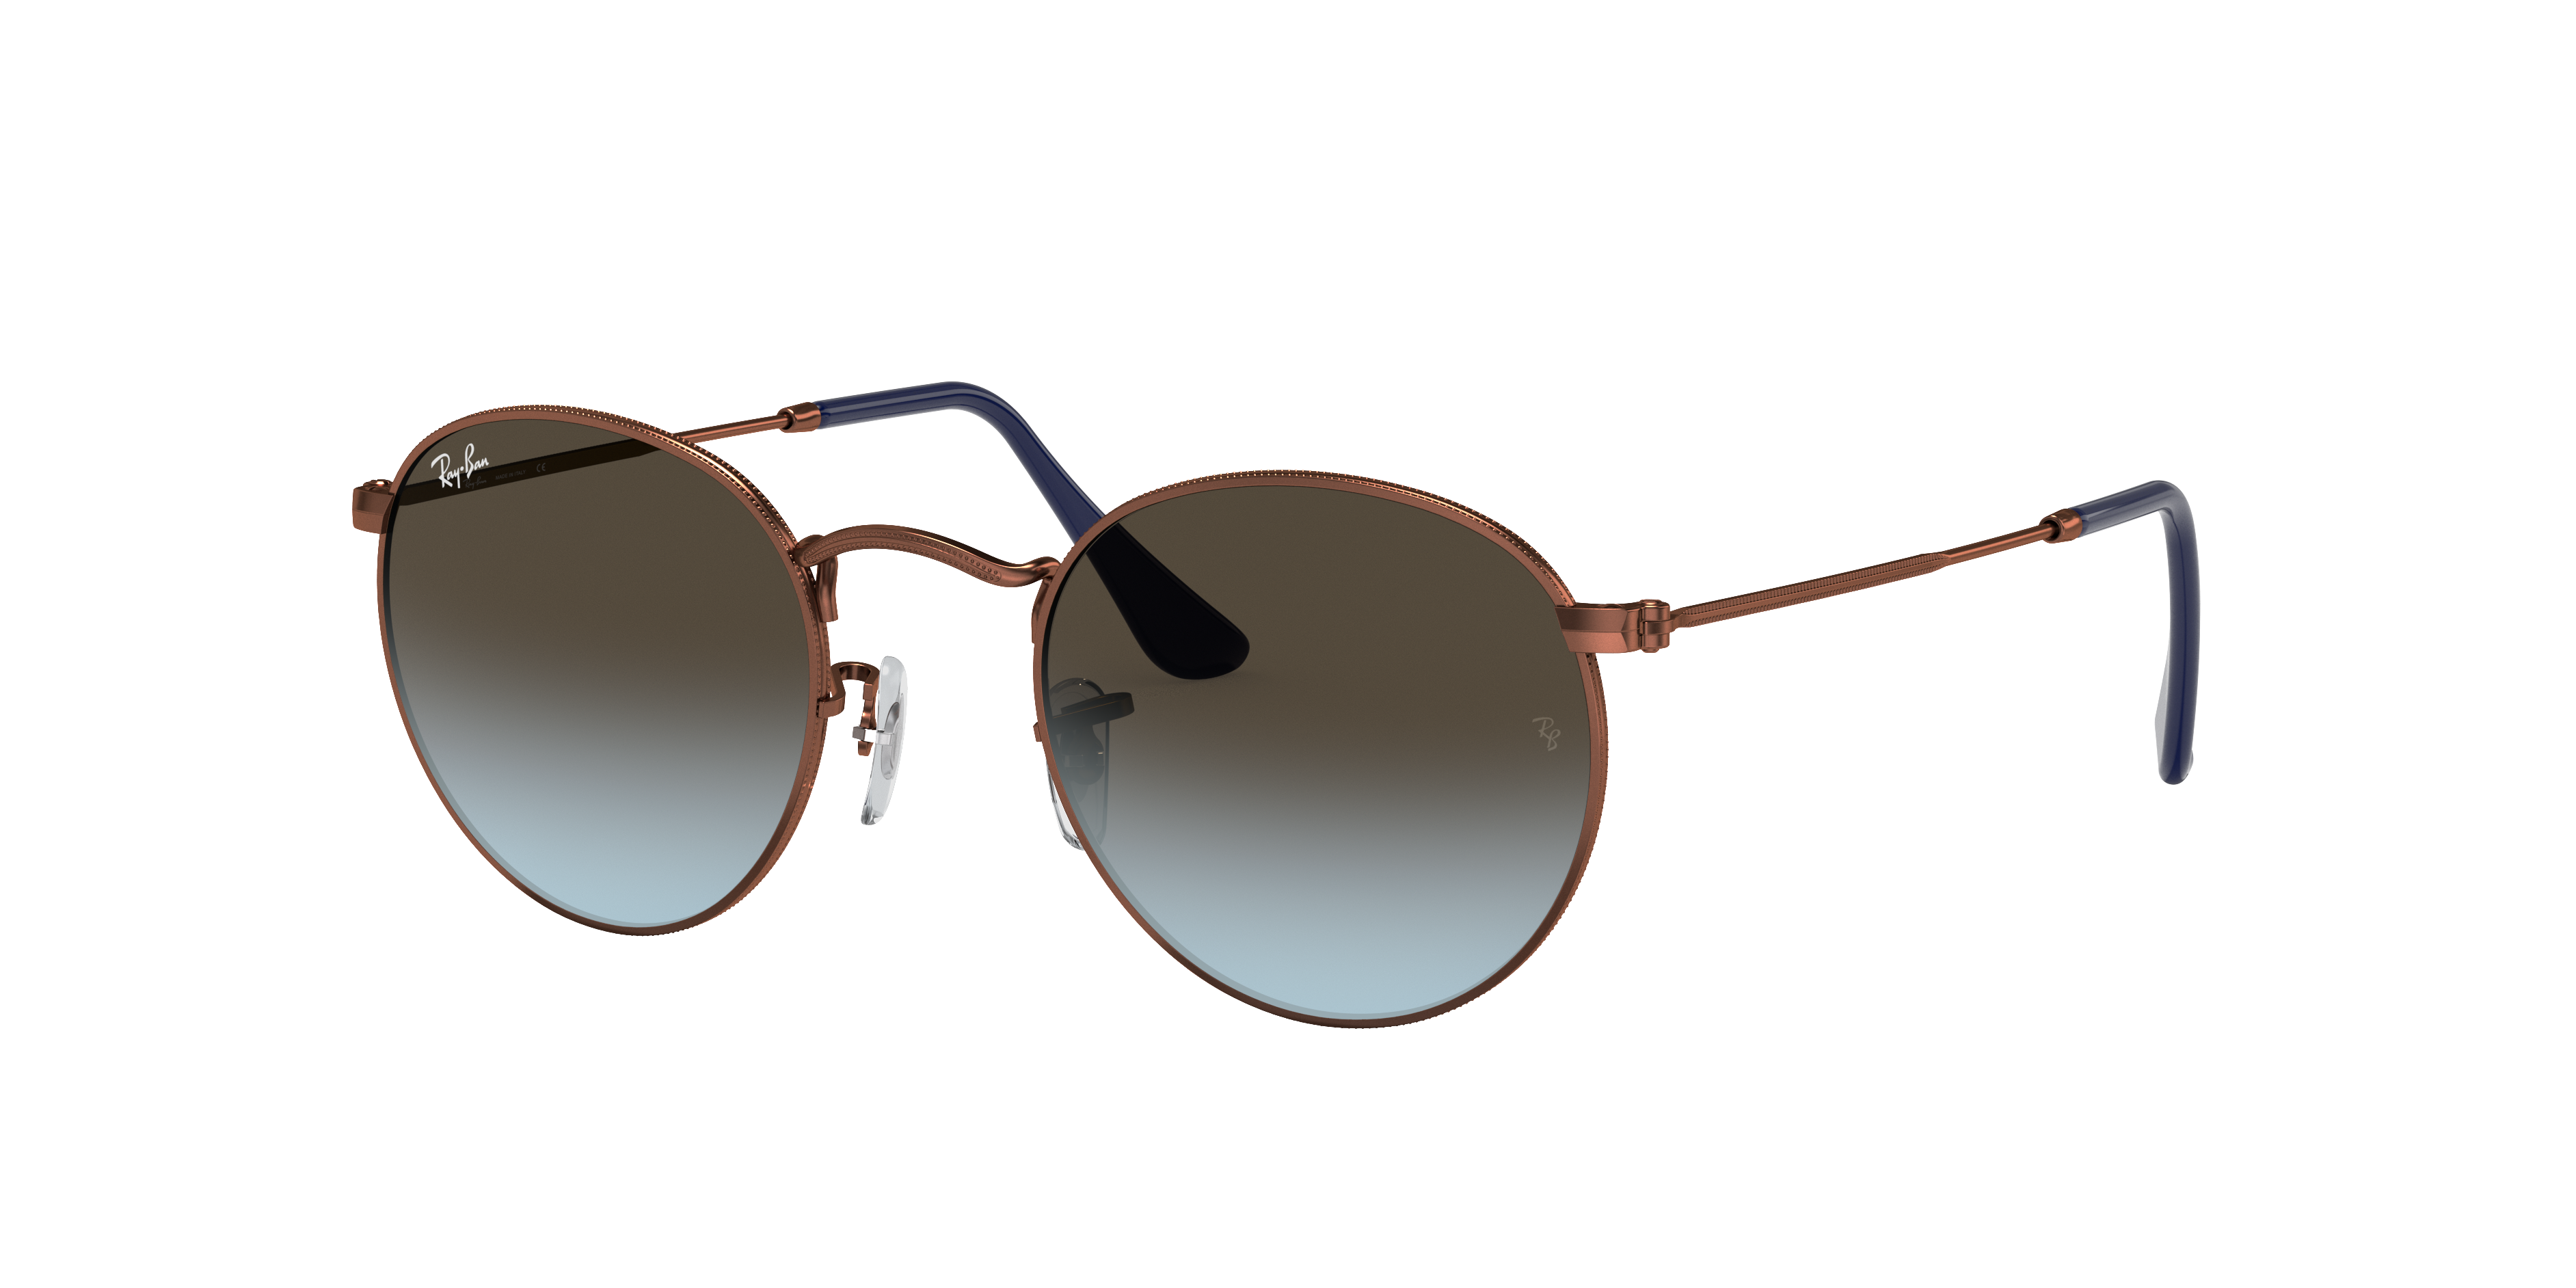 Ray-Ban Round Metal Bronze-Copper, Blue Lenses - RB3447